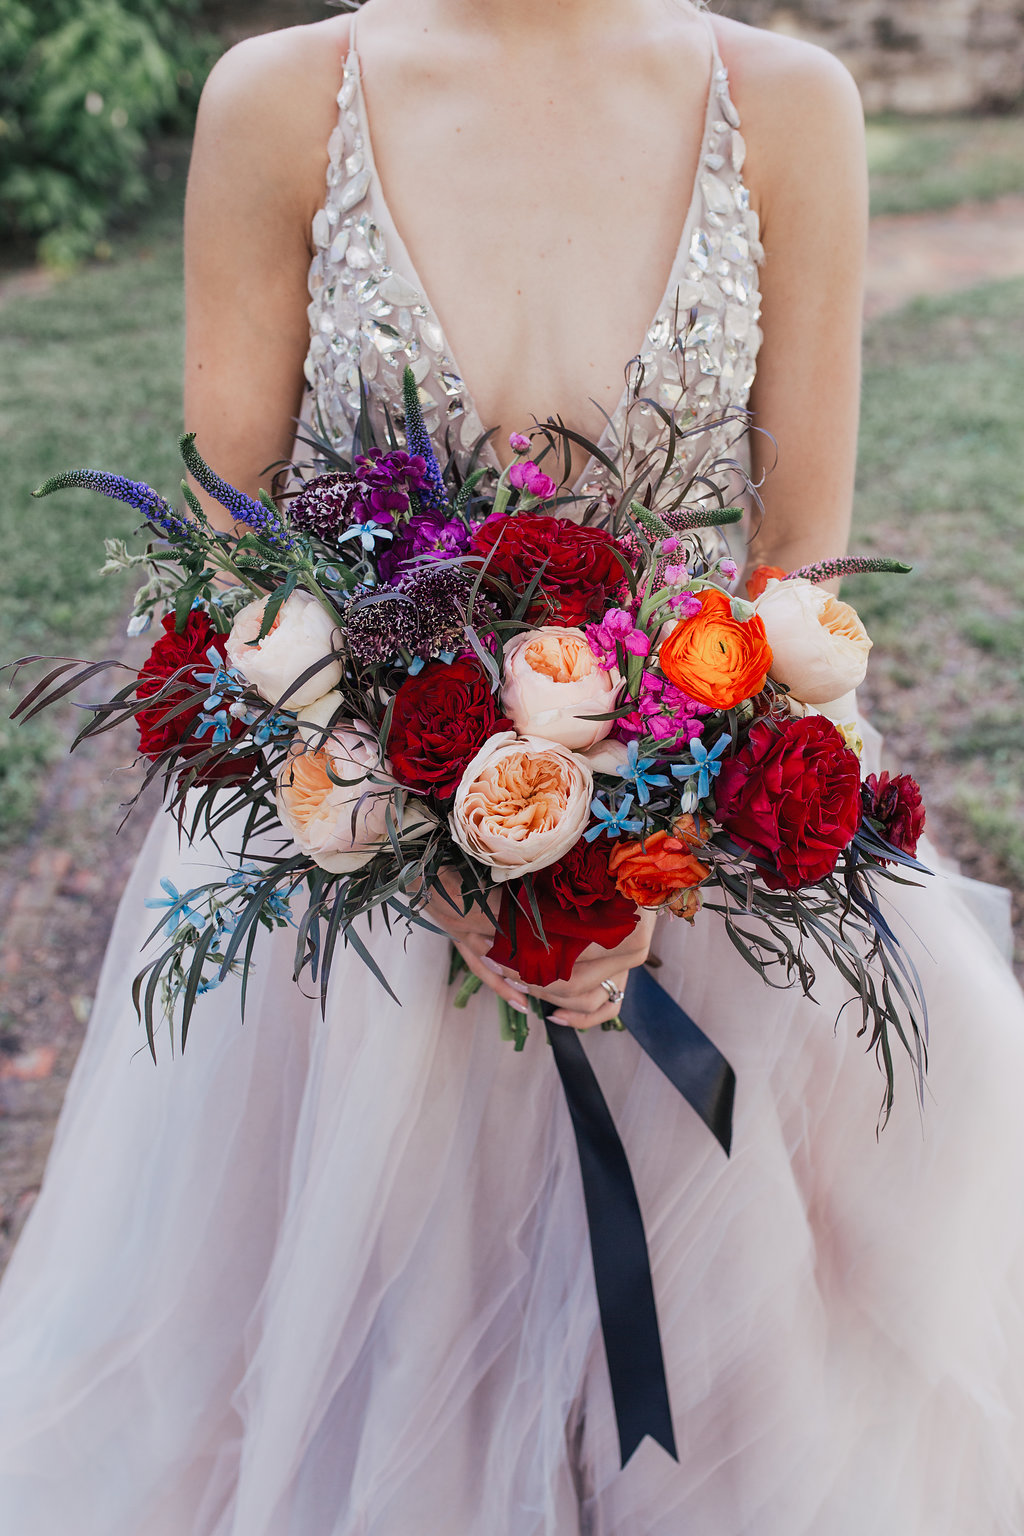 red and orange bouquets - photo by Alondra Vega Photography http://ruffledblog.com/jewel-toned-wedding-ideas-with-a-surprise-proposal